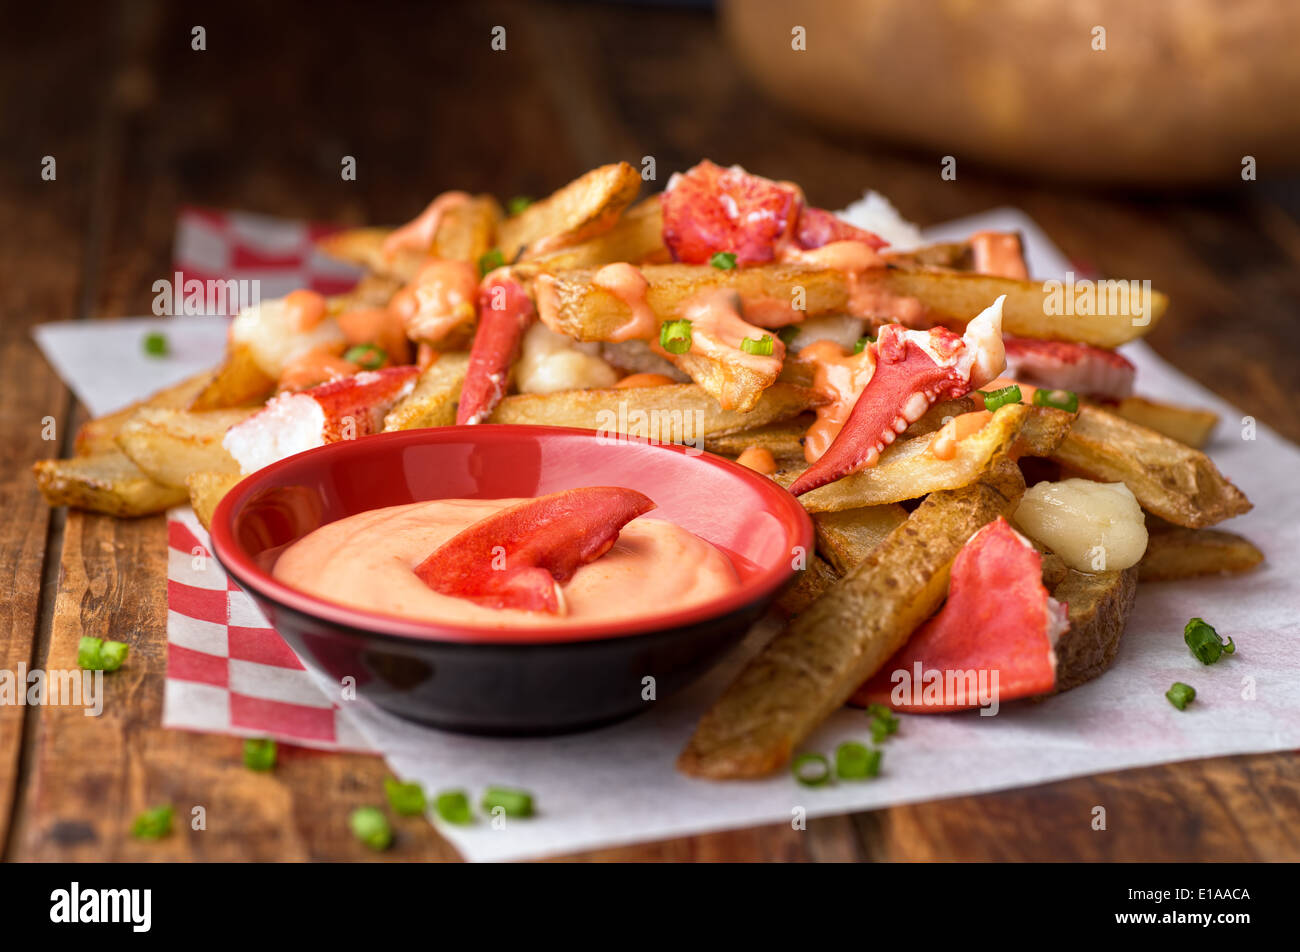 A decadent lobster poutine with lobster, home made french fries, cheese curds, special sauce, and green onion. - Stock Image